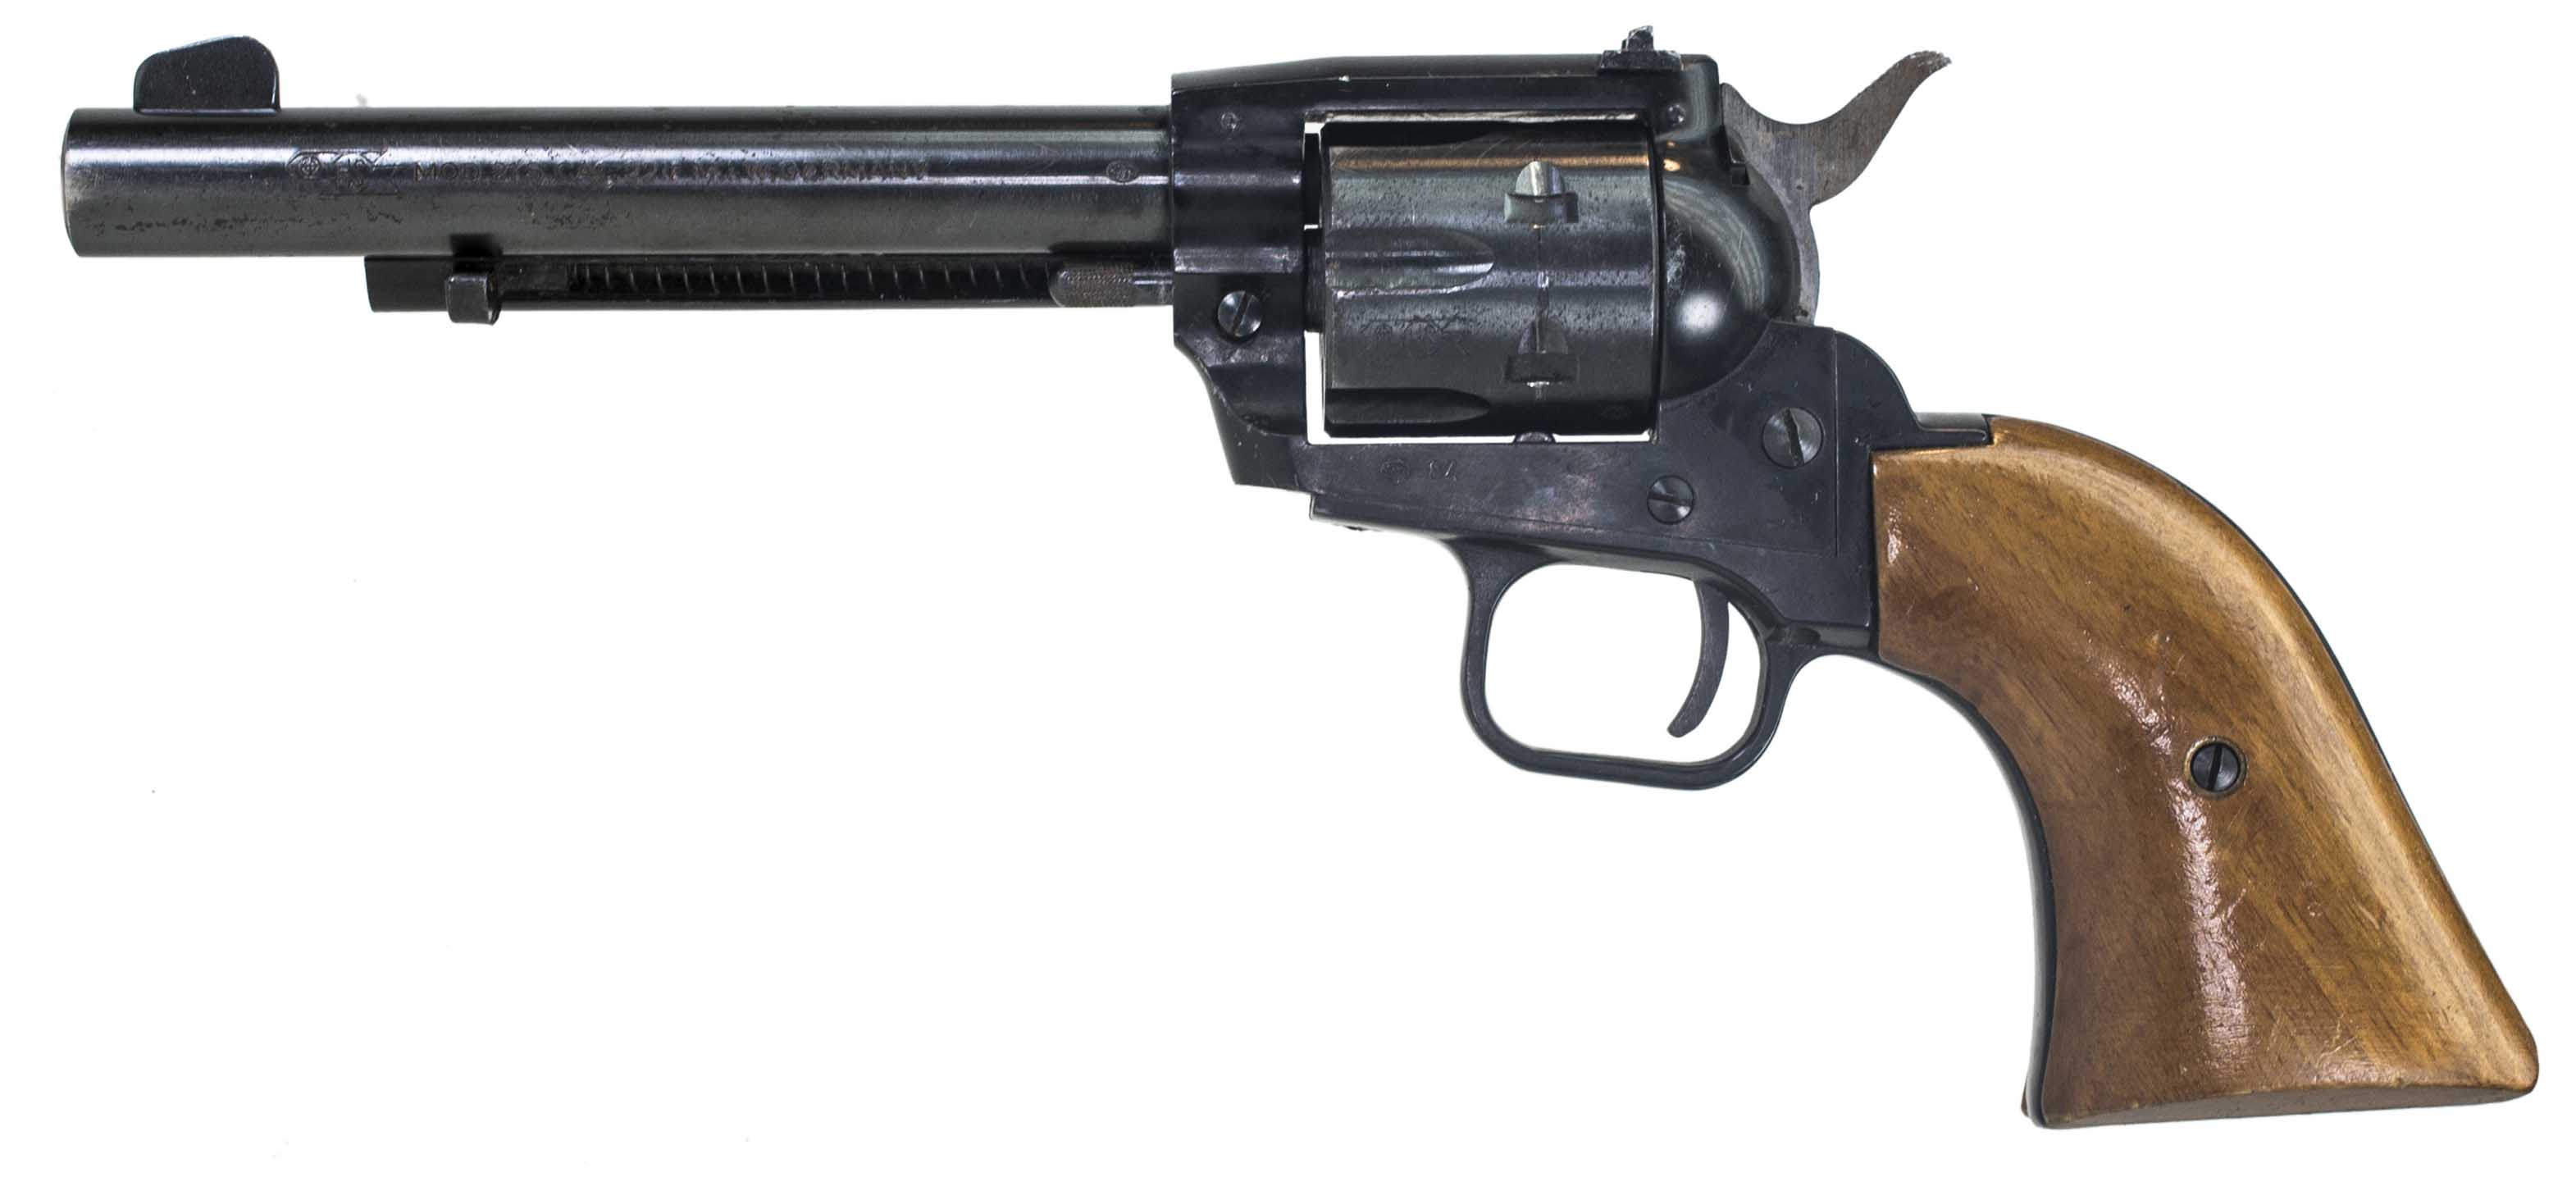 HERBERT SCHMIDT 21S REVOLVER 22LR (Auction ID: 5608524, End Time